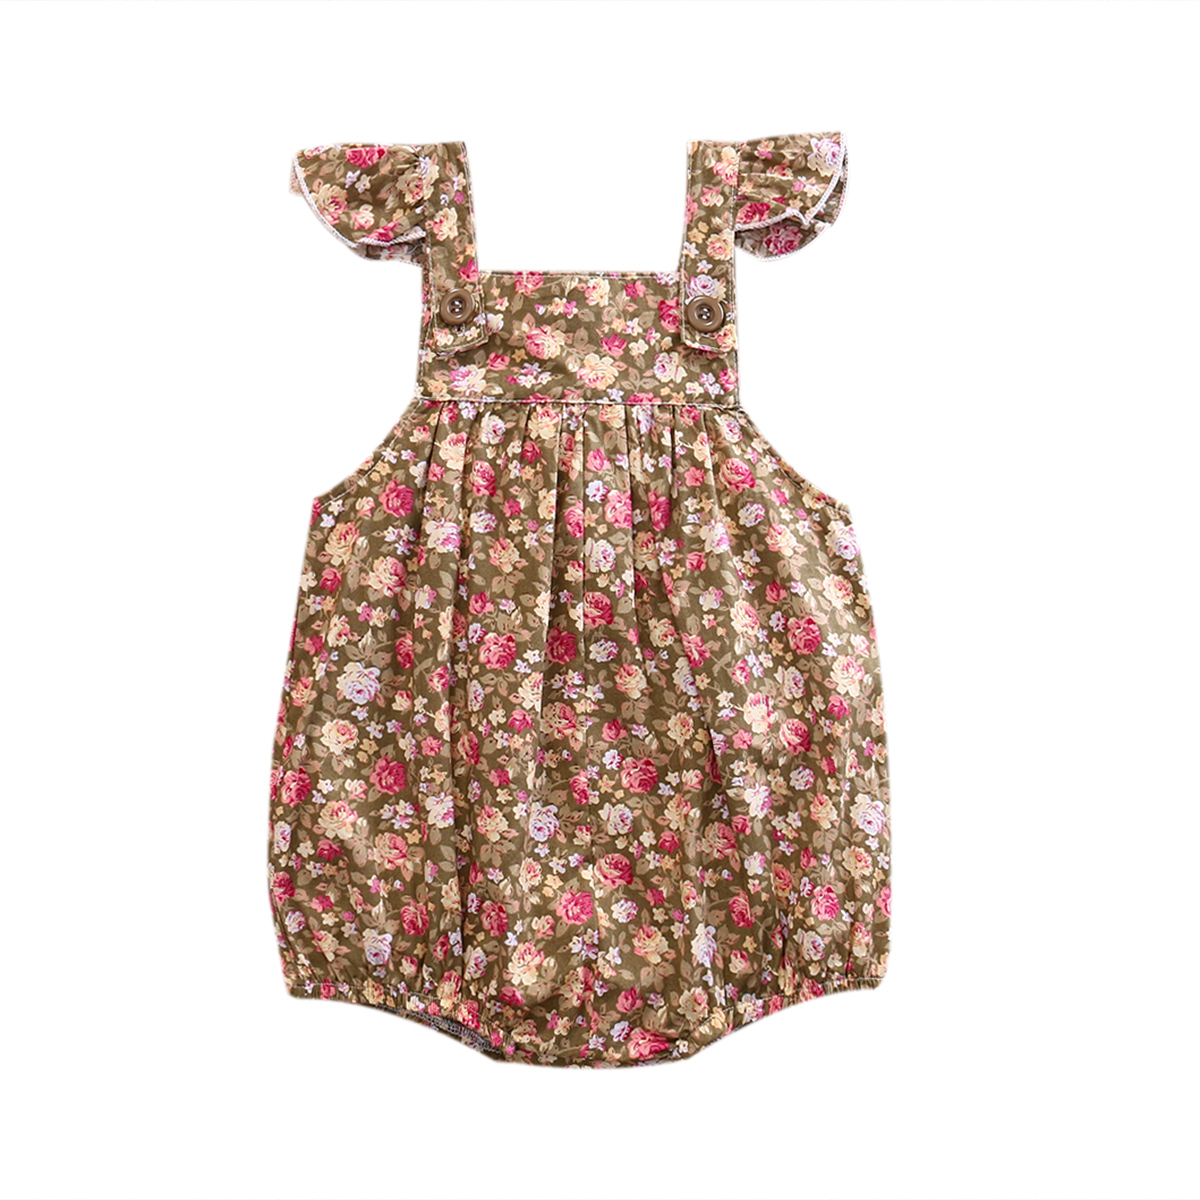 Newborn Infant Baby Girl Floral Rompers Jumpsuit Sunsuit Cotton One-Pieces Clothes Girls Summer Outfits